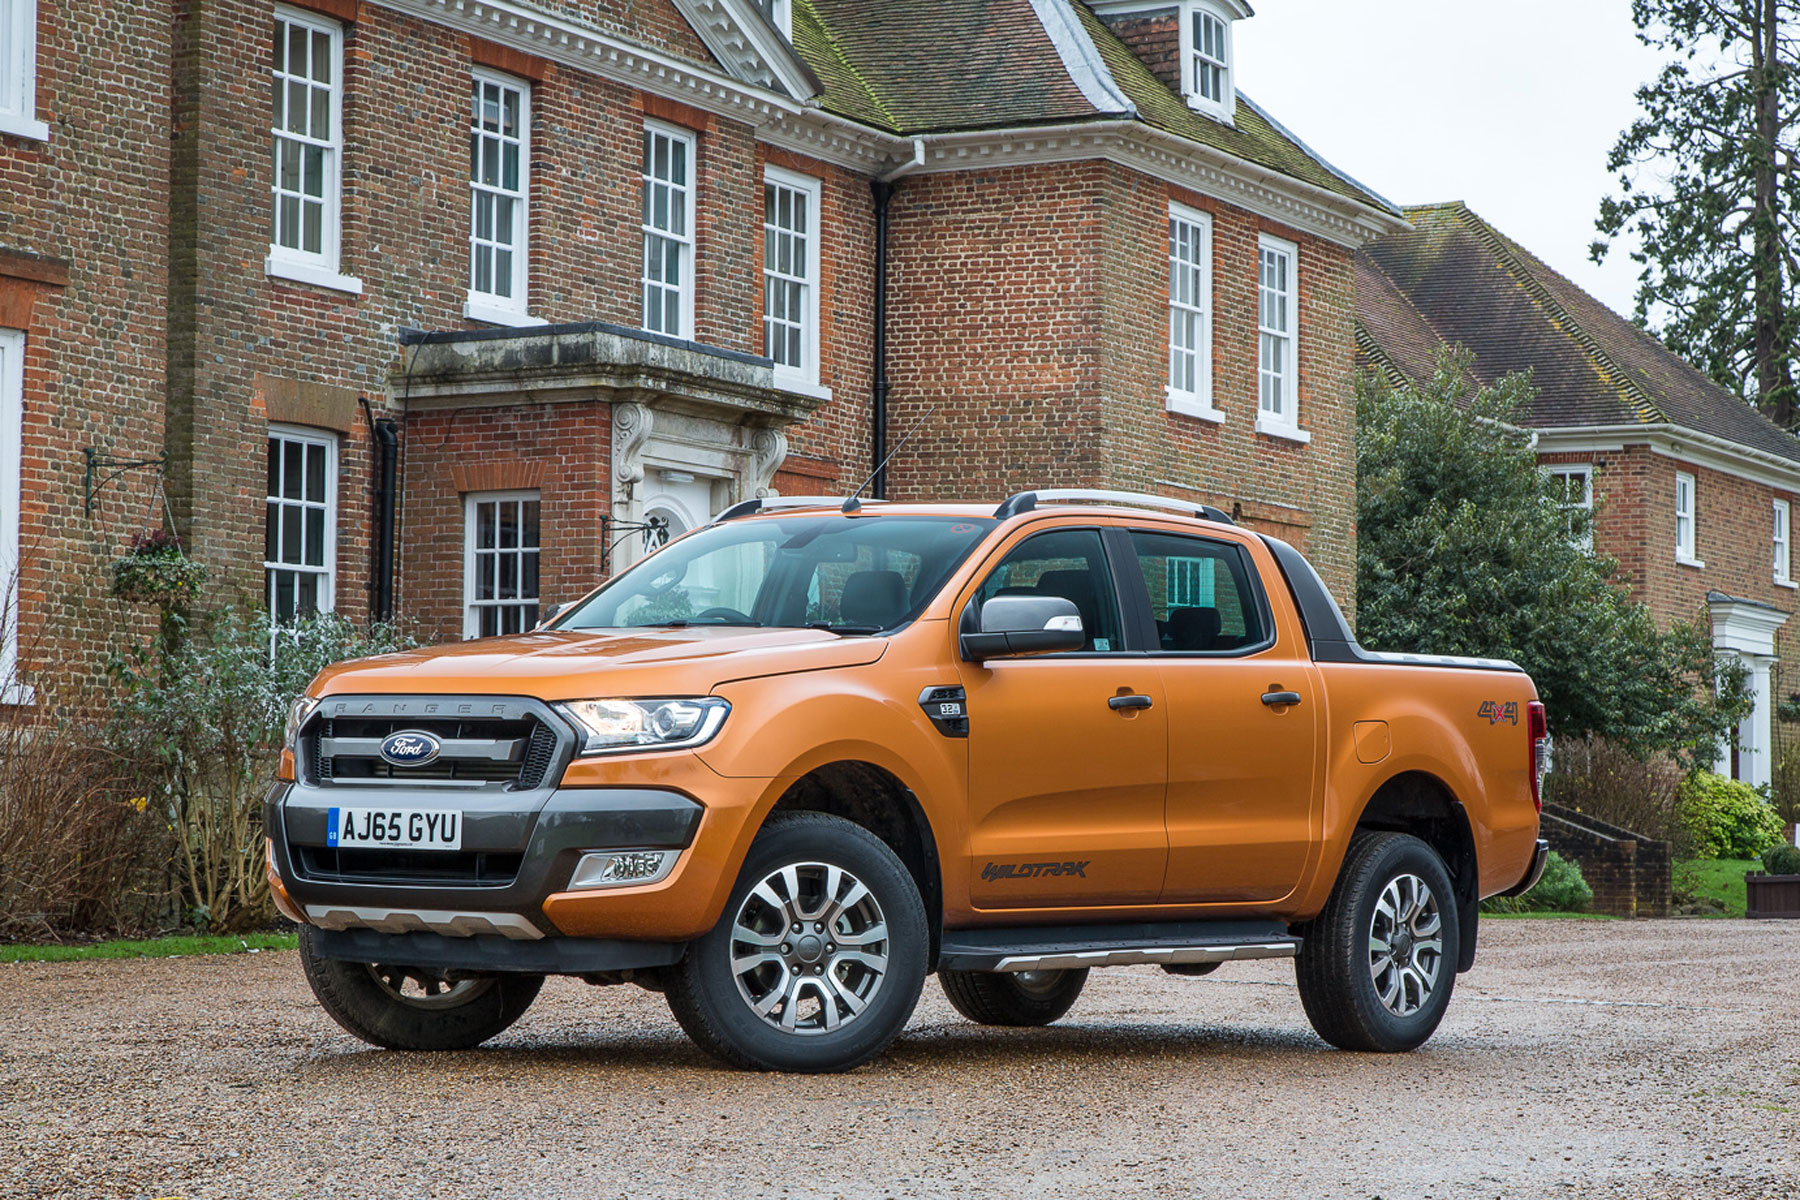 the ford ranger is britain 39 s 39 most desirable 39 used car. Black Bedroom Furniture Sets. Home Design Ideas